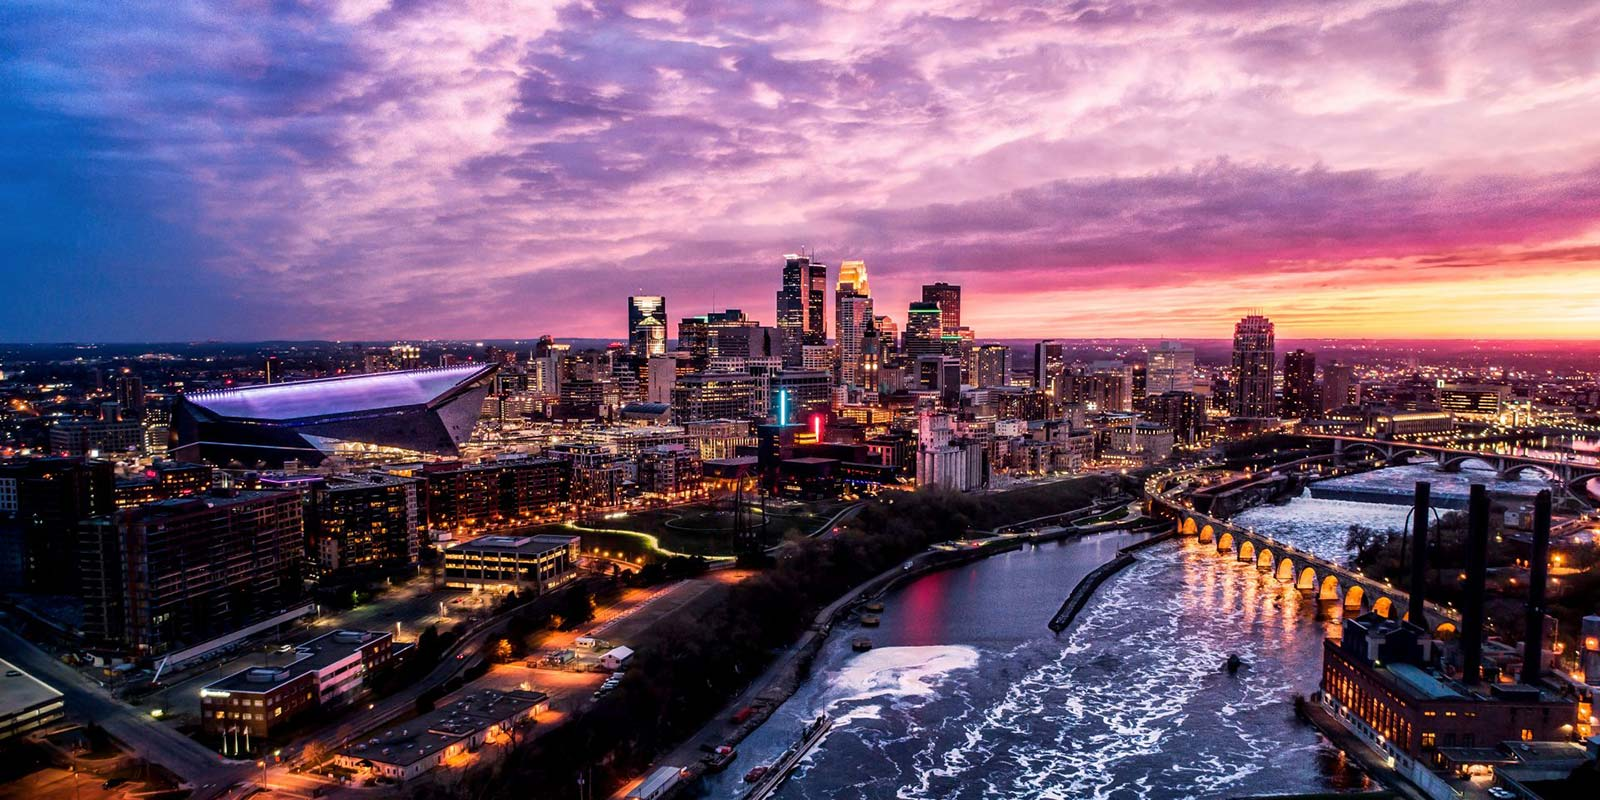 Minneapolis skyline with colorful sunset